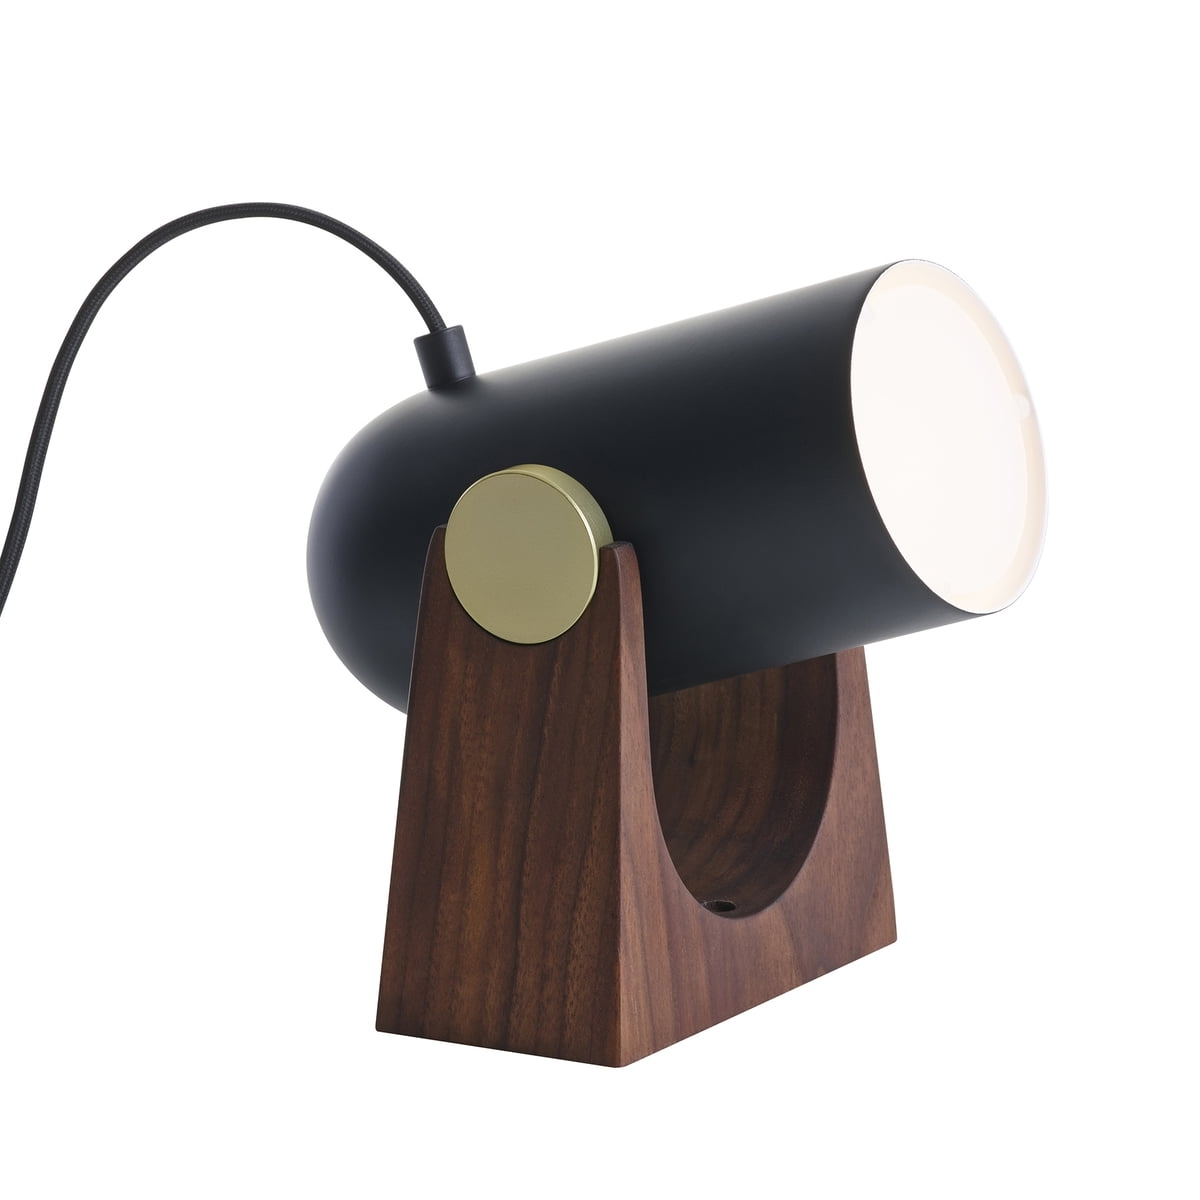 Table & Wall Lample Klint In Most Recently Released Rona Outdoor Wall Lighting (View 14 of 20)